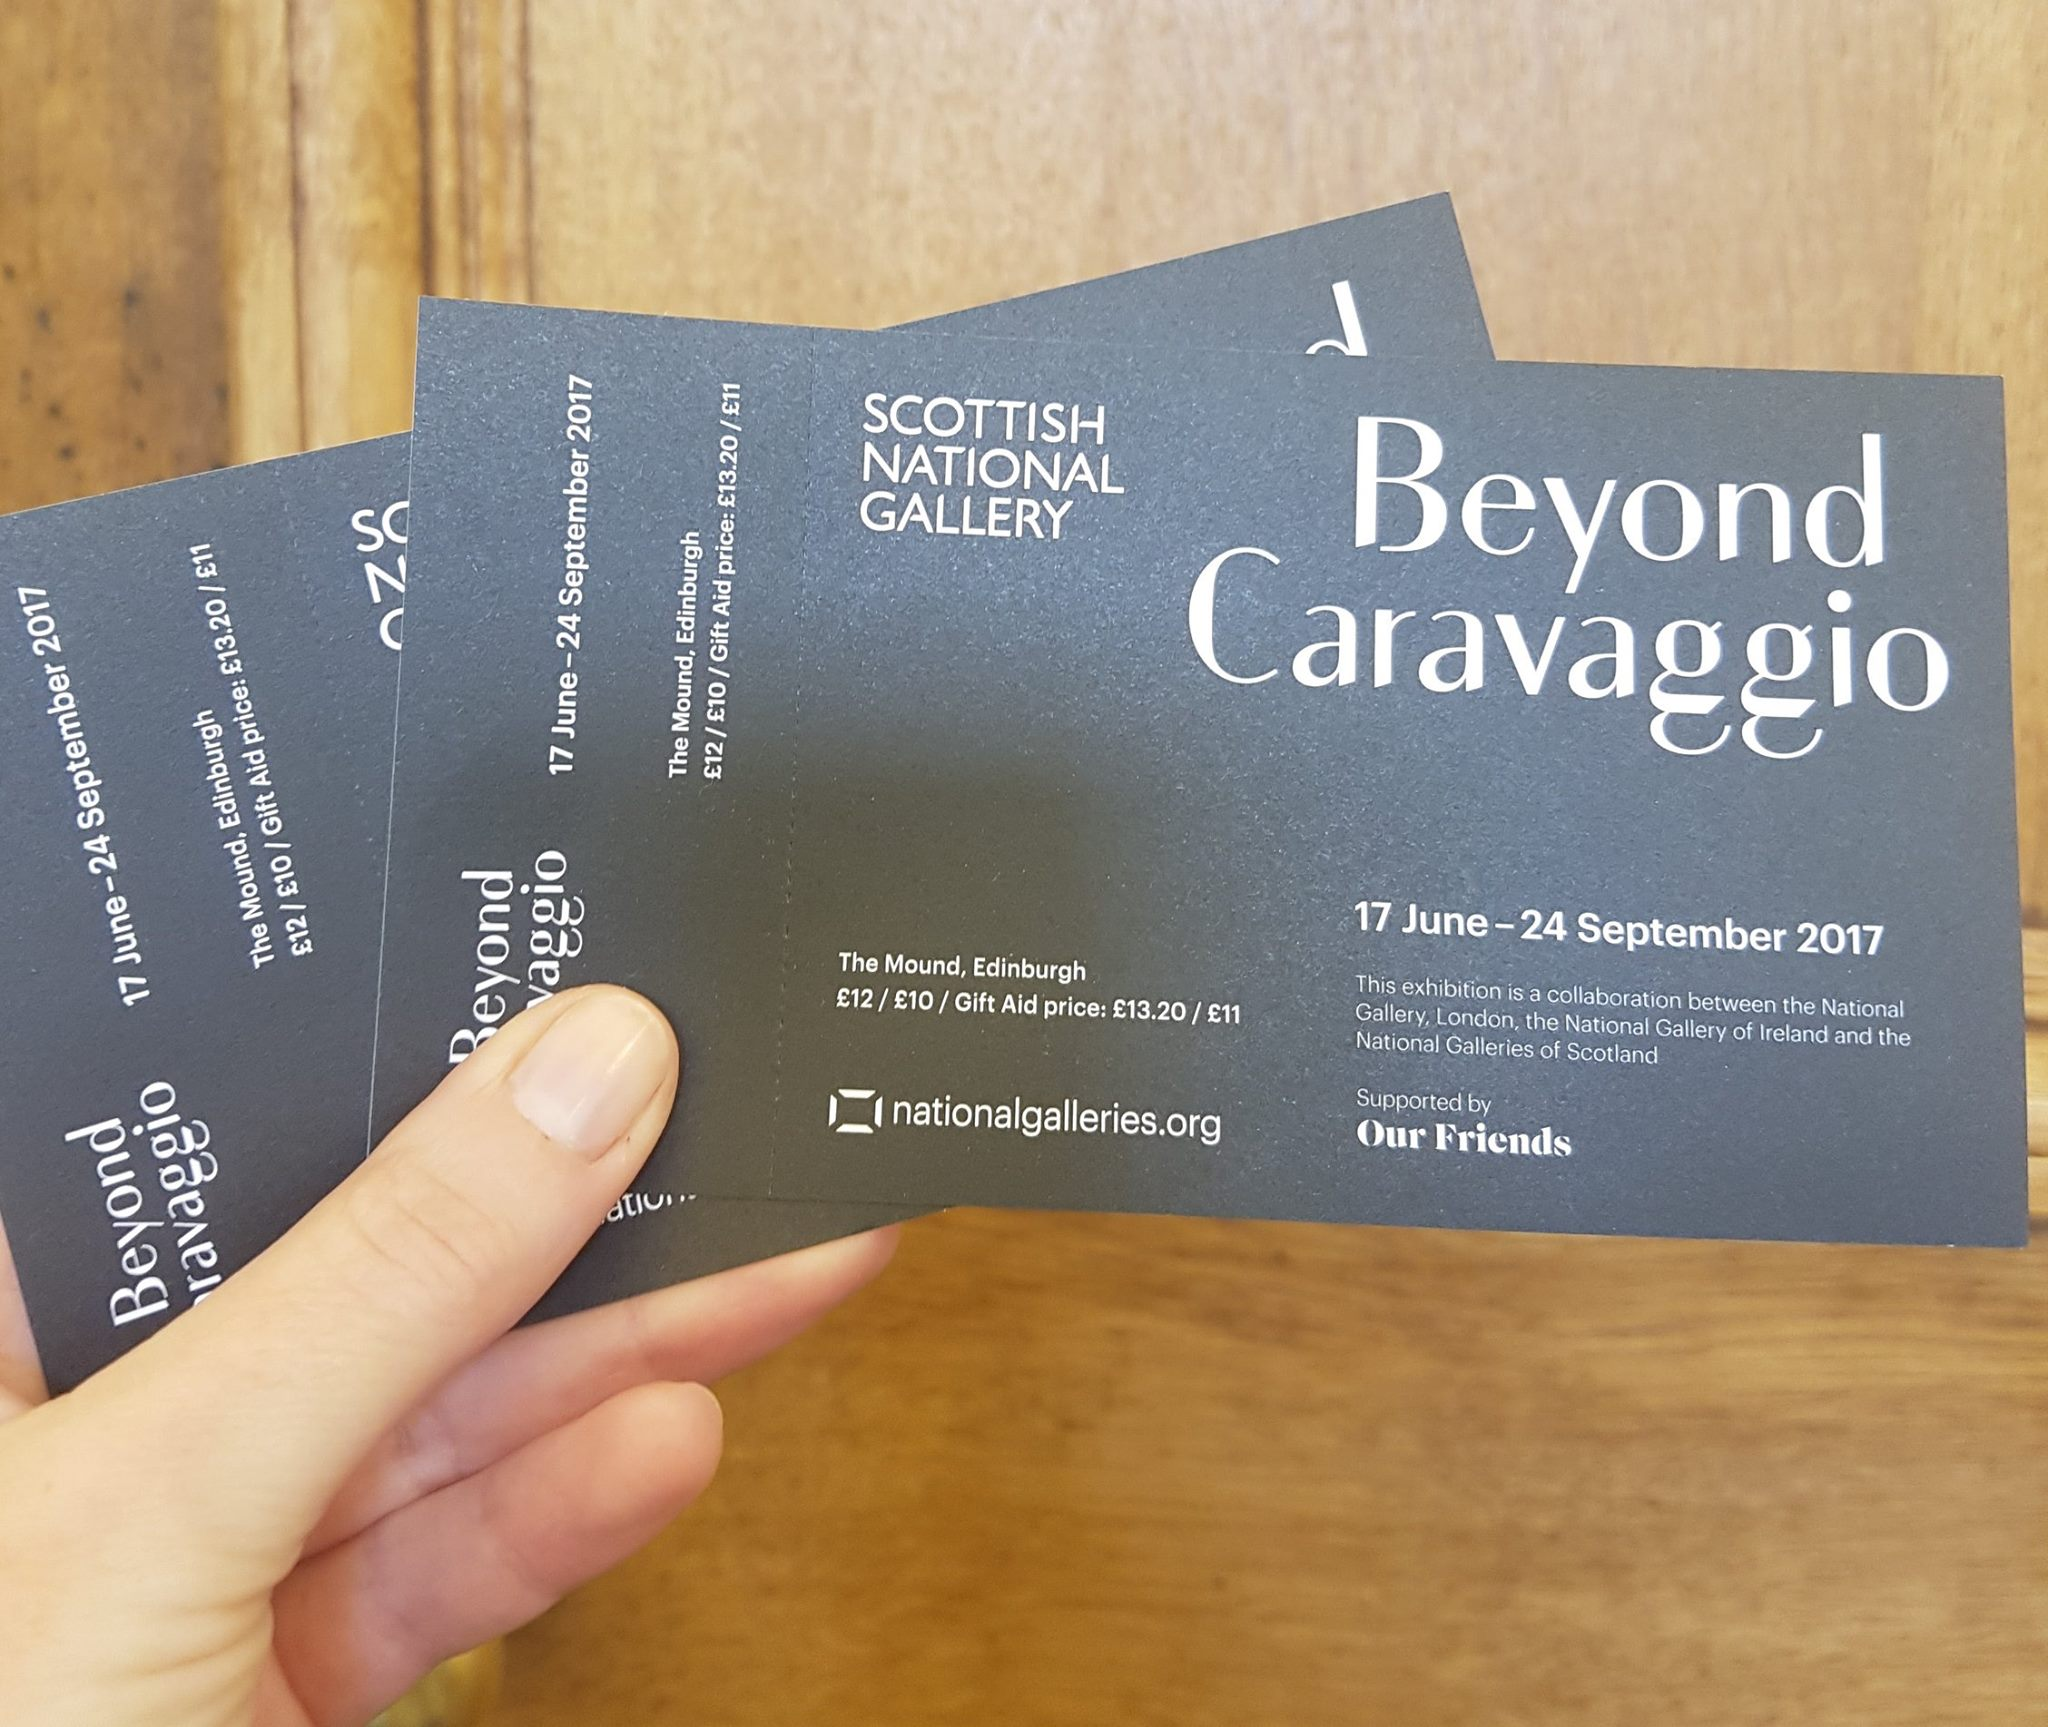 win tickets to the final weekend of caravaggio contini edinburgh